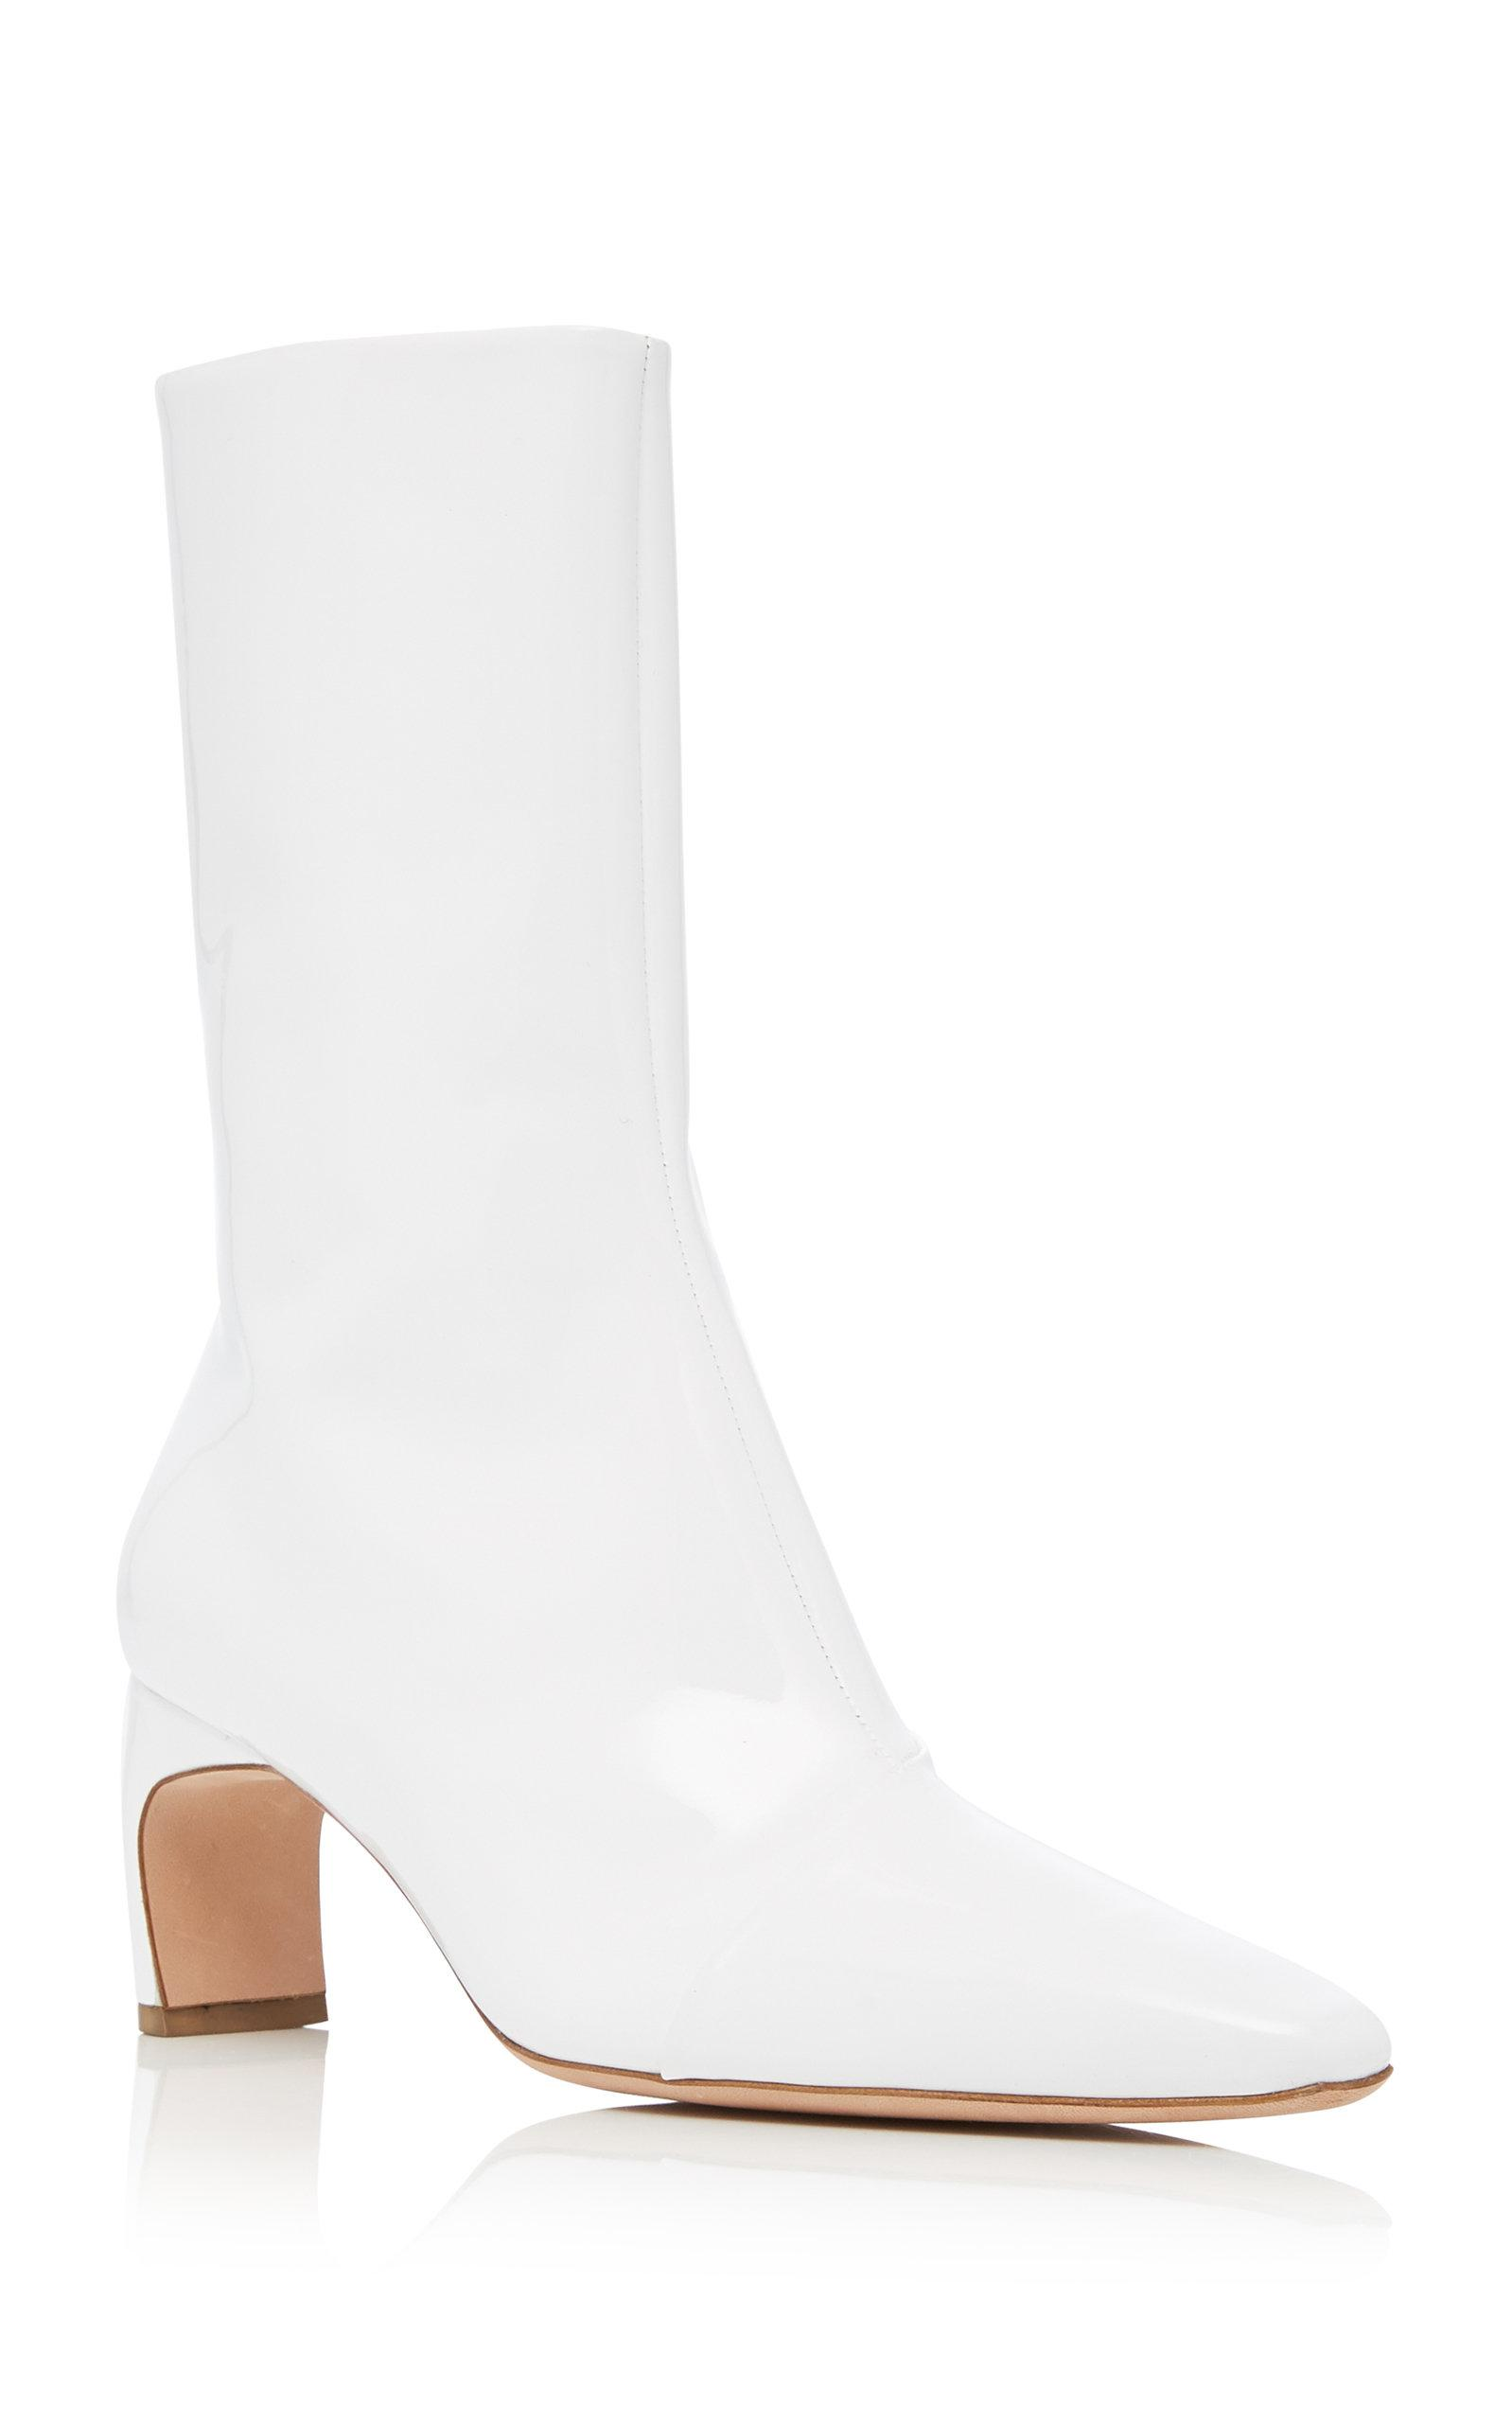 Rosetta Getty Leather Heeled Boot in White